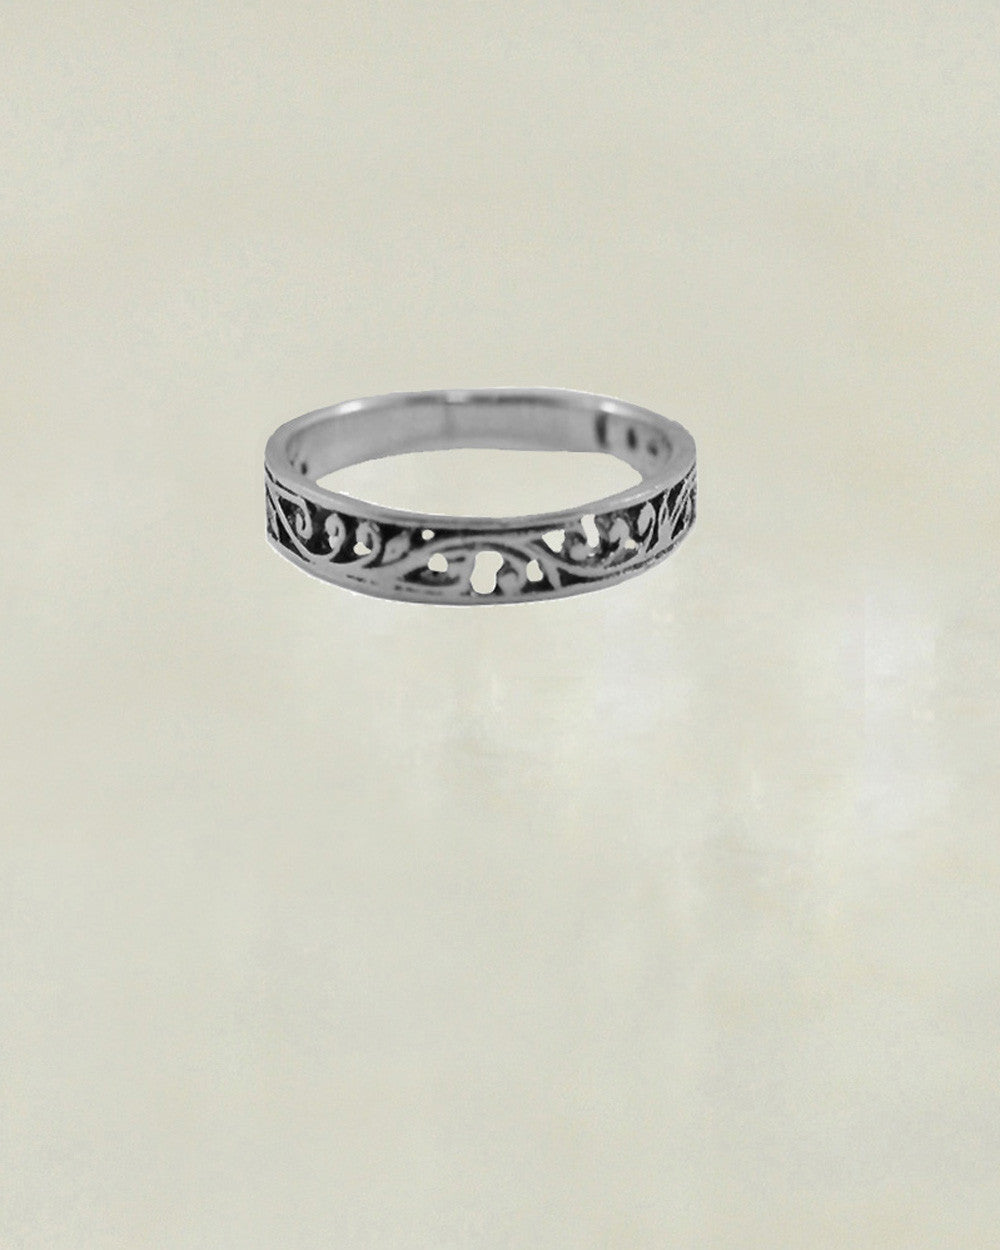 Scrolled Leaves Sterling Silver Ring